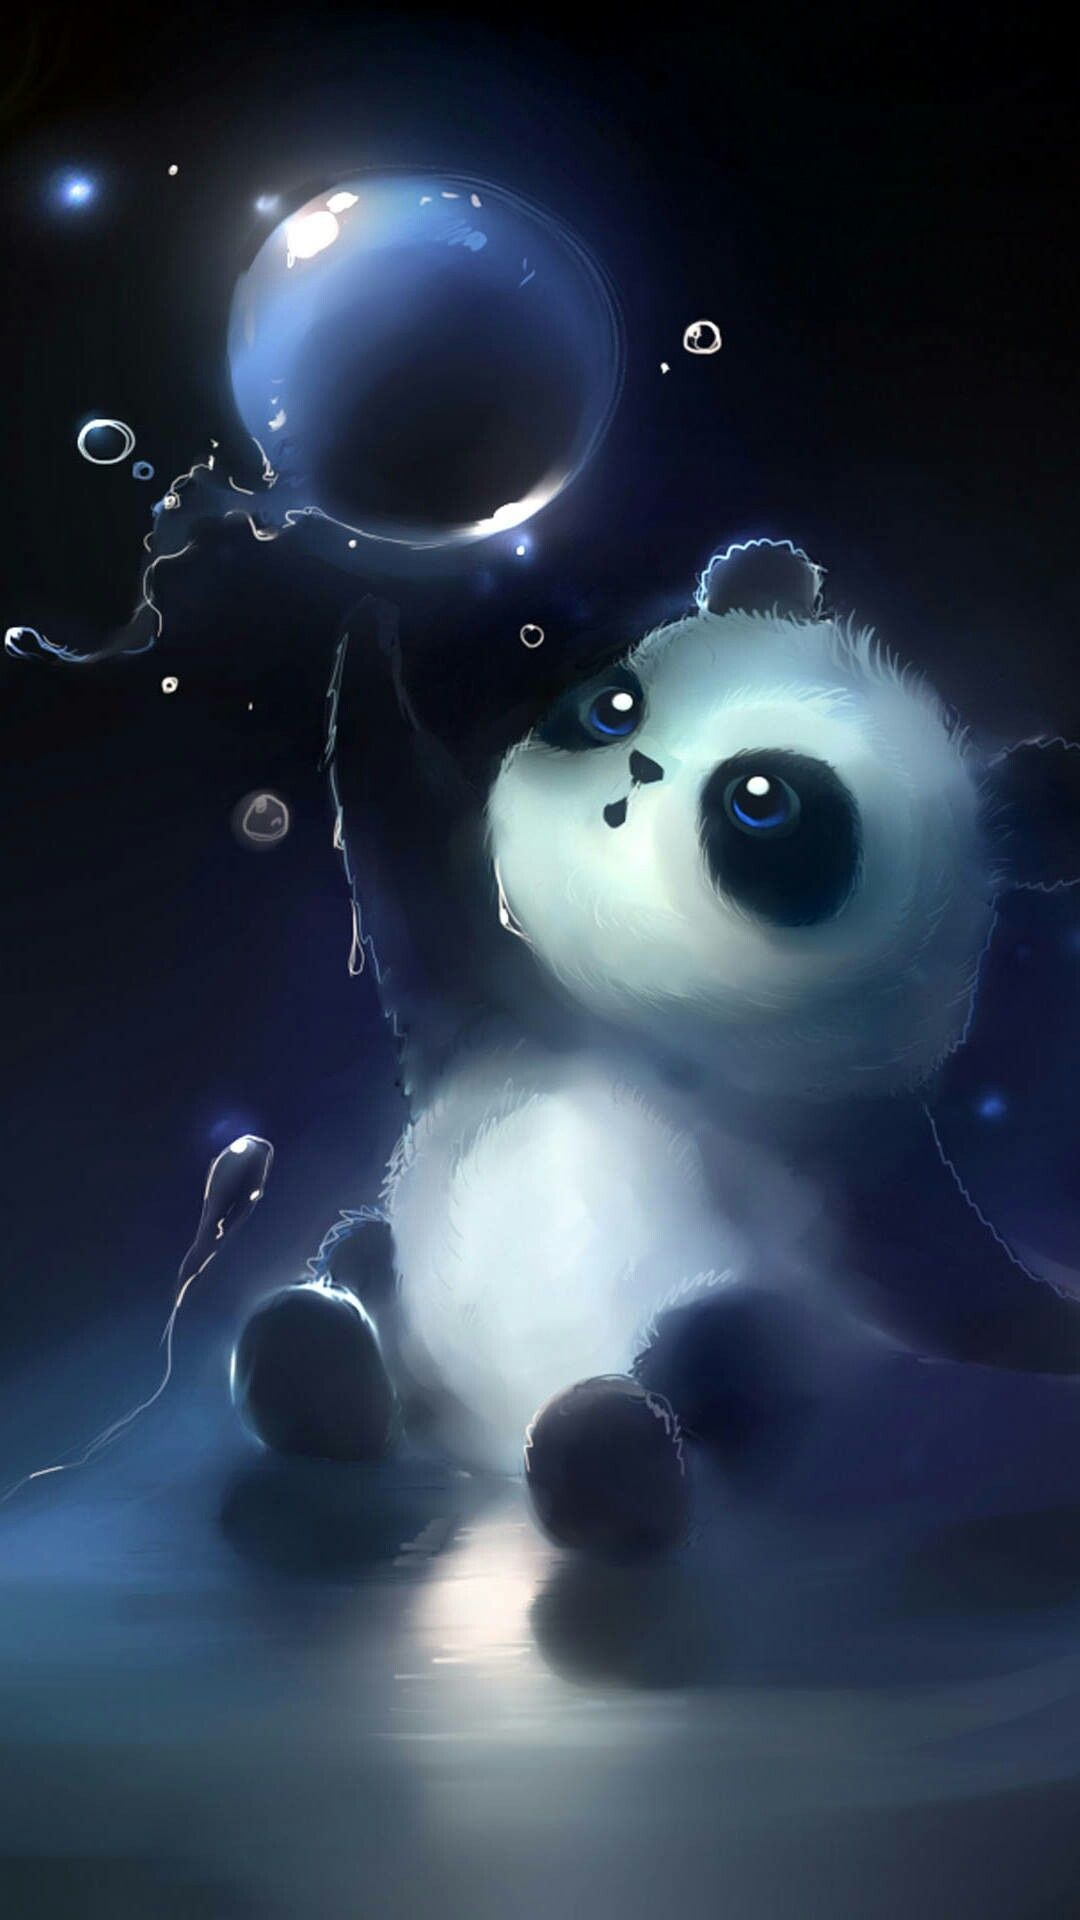 Res: 1080x1920, Pin by Wang Marx on Design | Pinterest | Panda, Wallpaper and Gif pictures